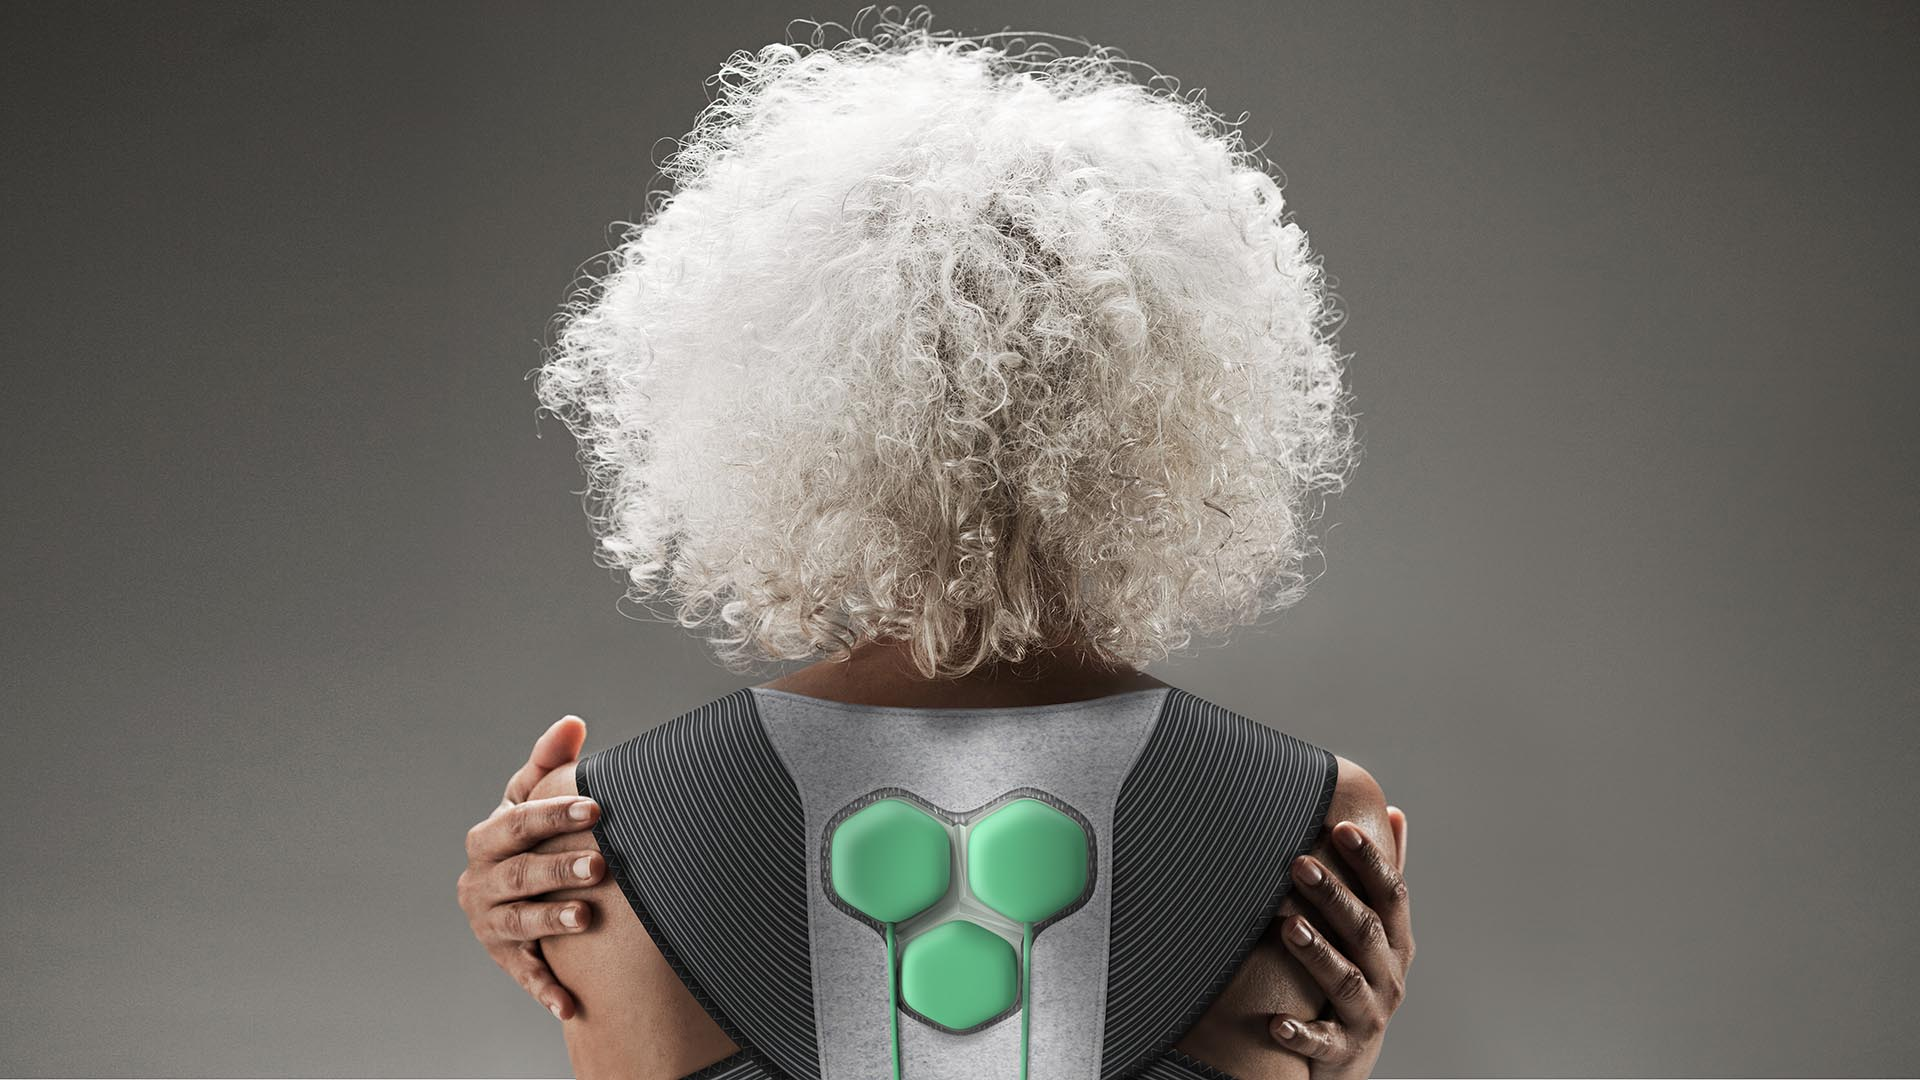 Auro Powered Clothing, by Yves Behar/Fuseproject is a new design aimed at older adults